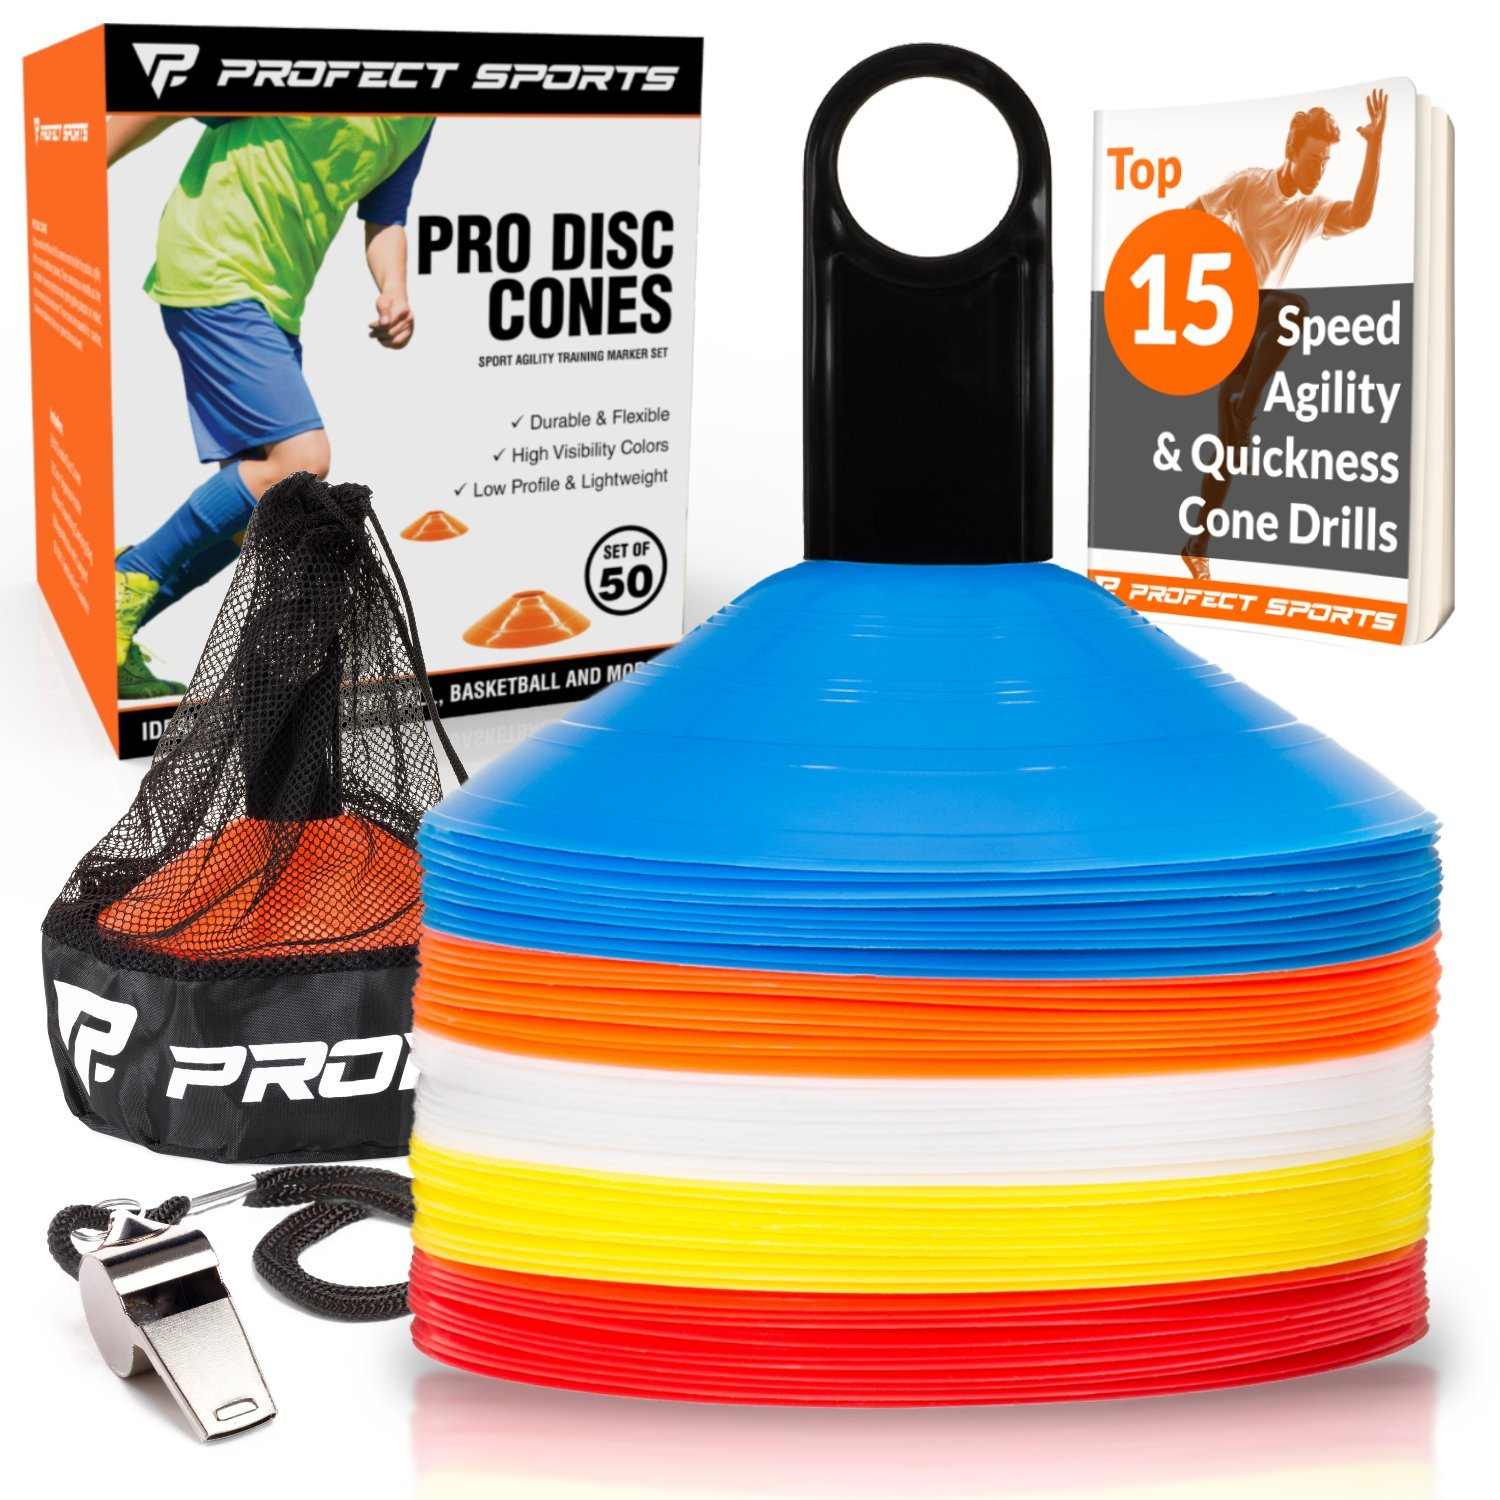 8fb8b71a6 Get Quotations · Pro Disc Cones (Set of 50) - Agility Soccer Cones with Carry  Bag and